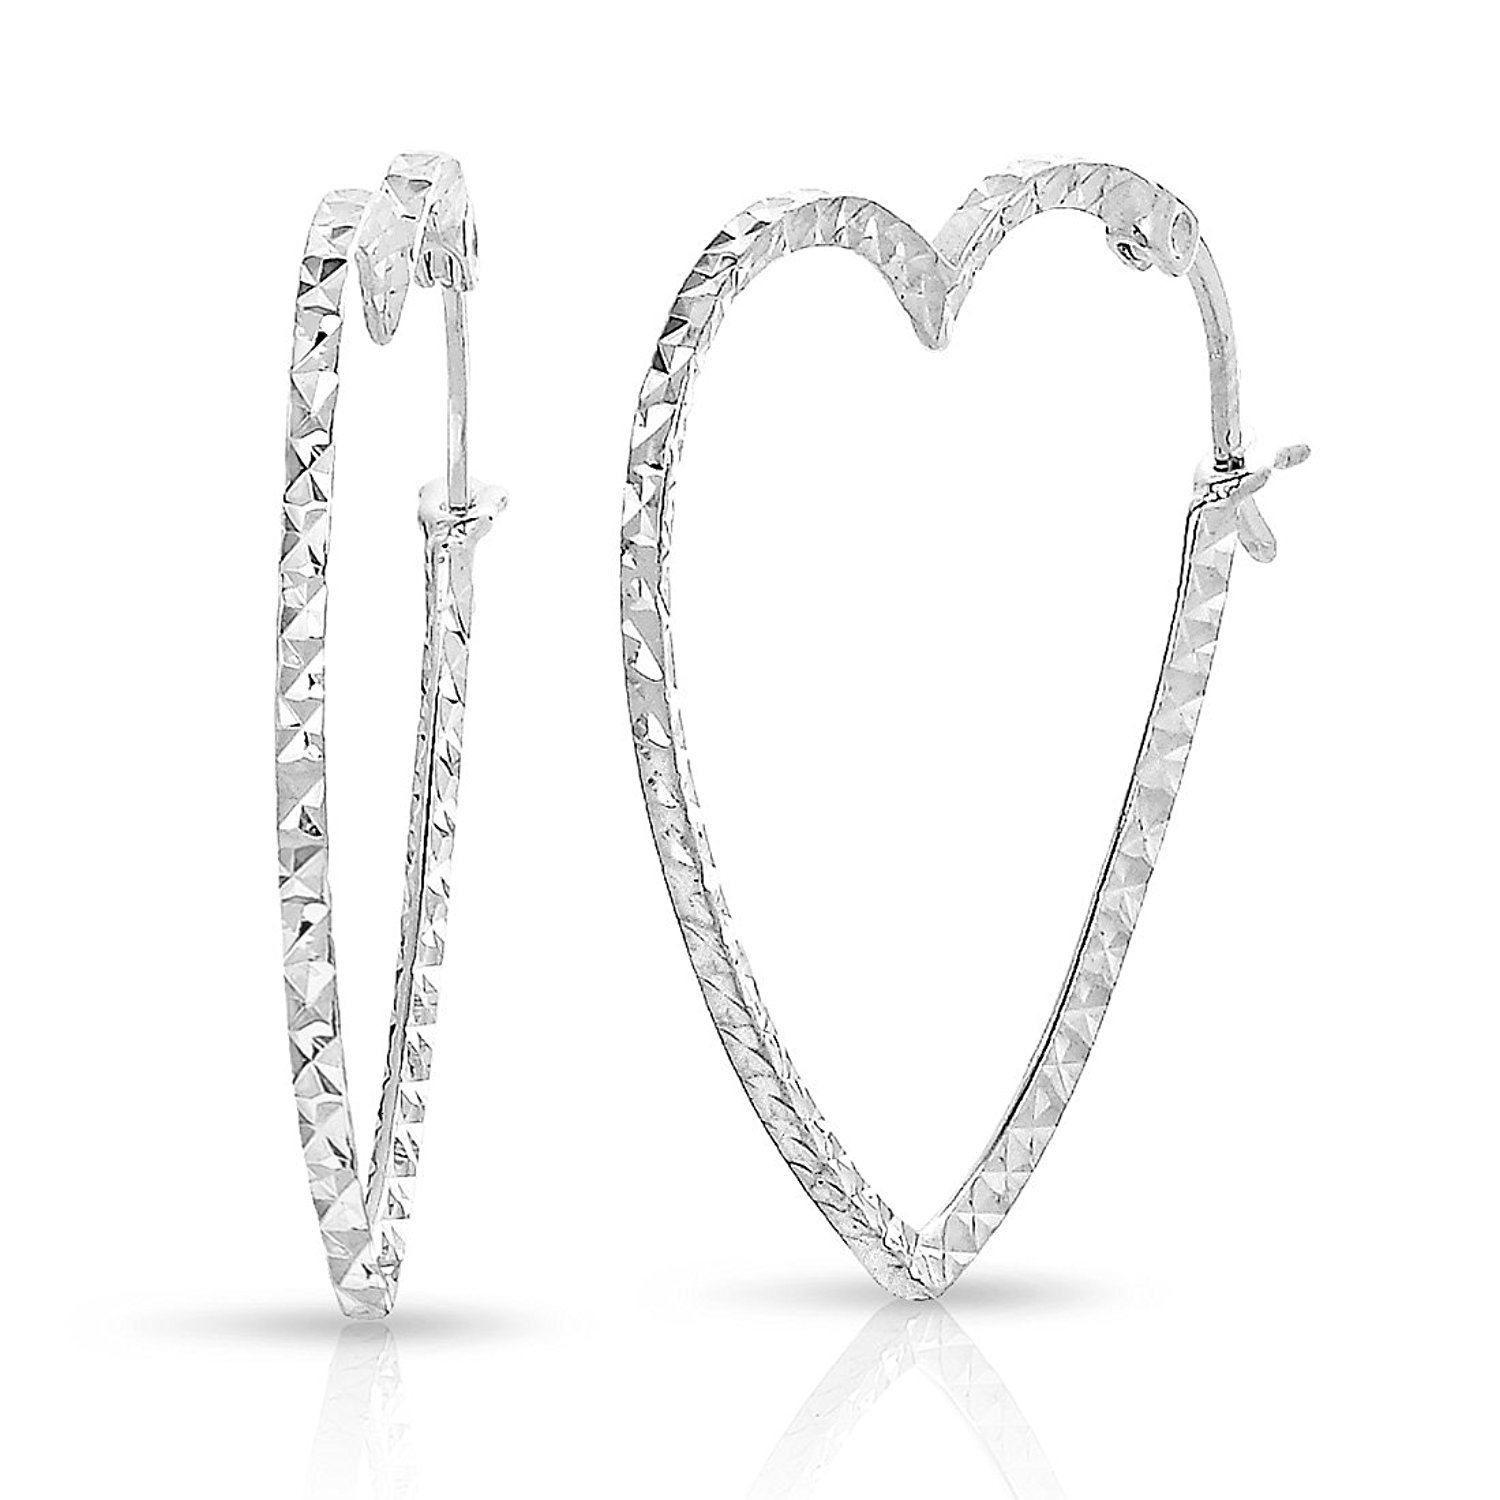 girls studs earrings wedding sirios silver for ears women shaped sensitive heart